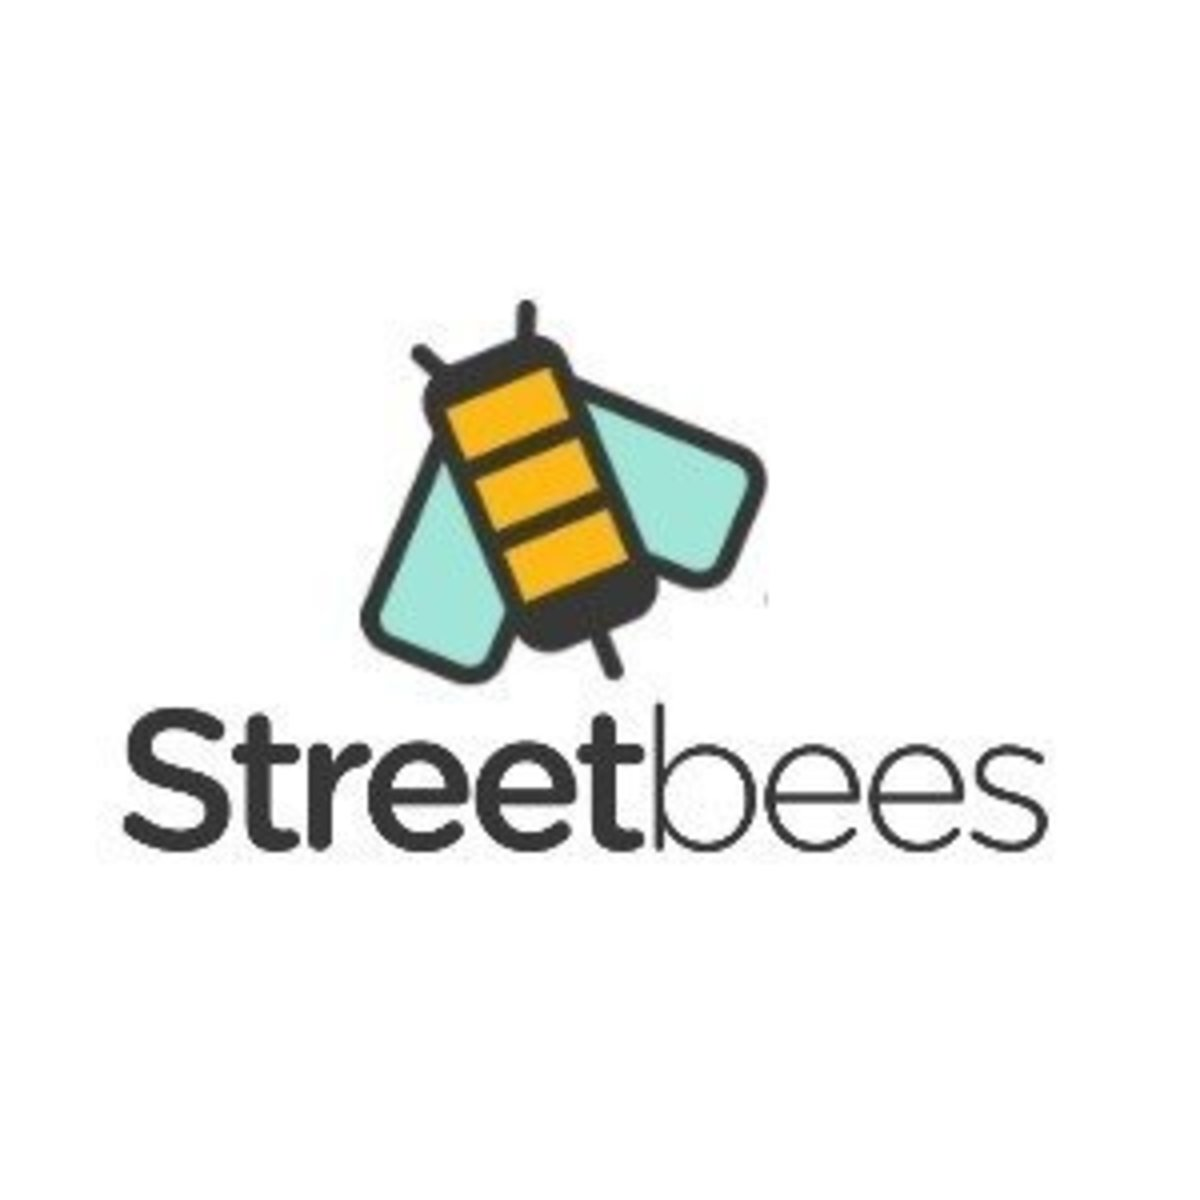 Reviewing the Streetbees App: a way to make some change